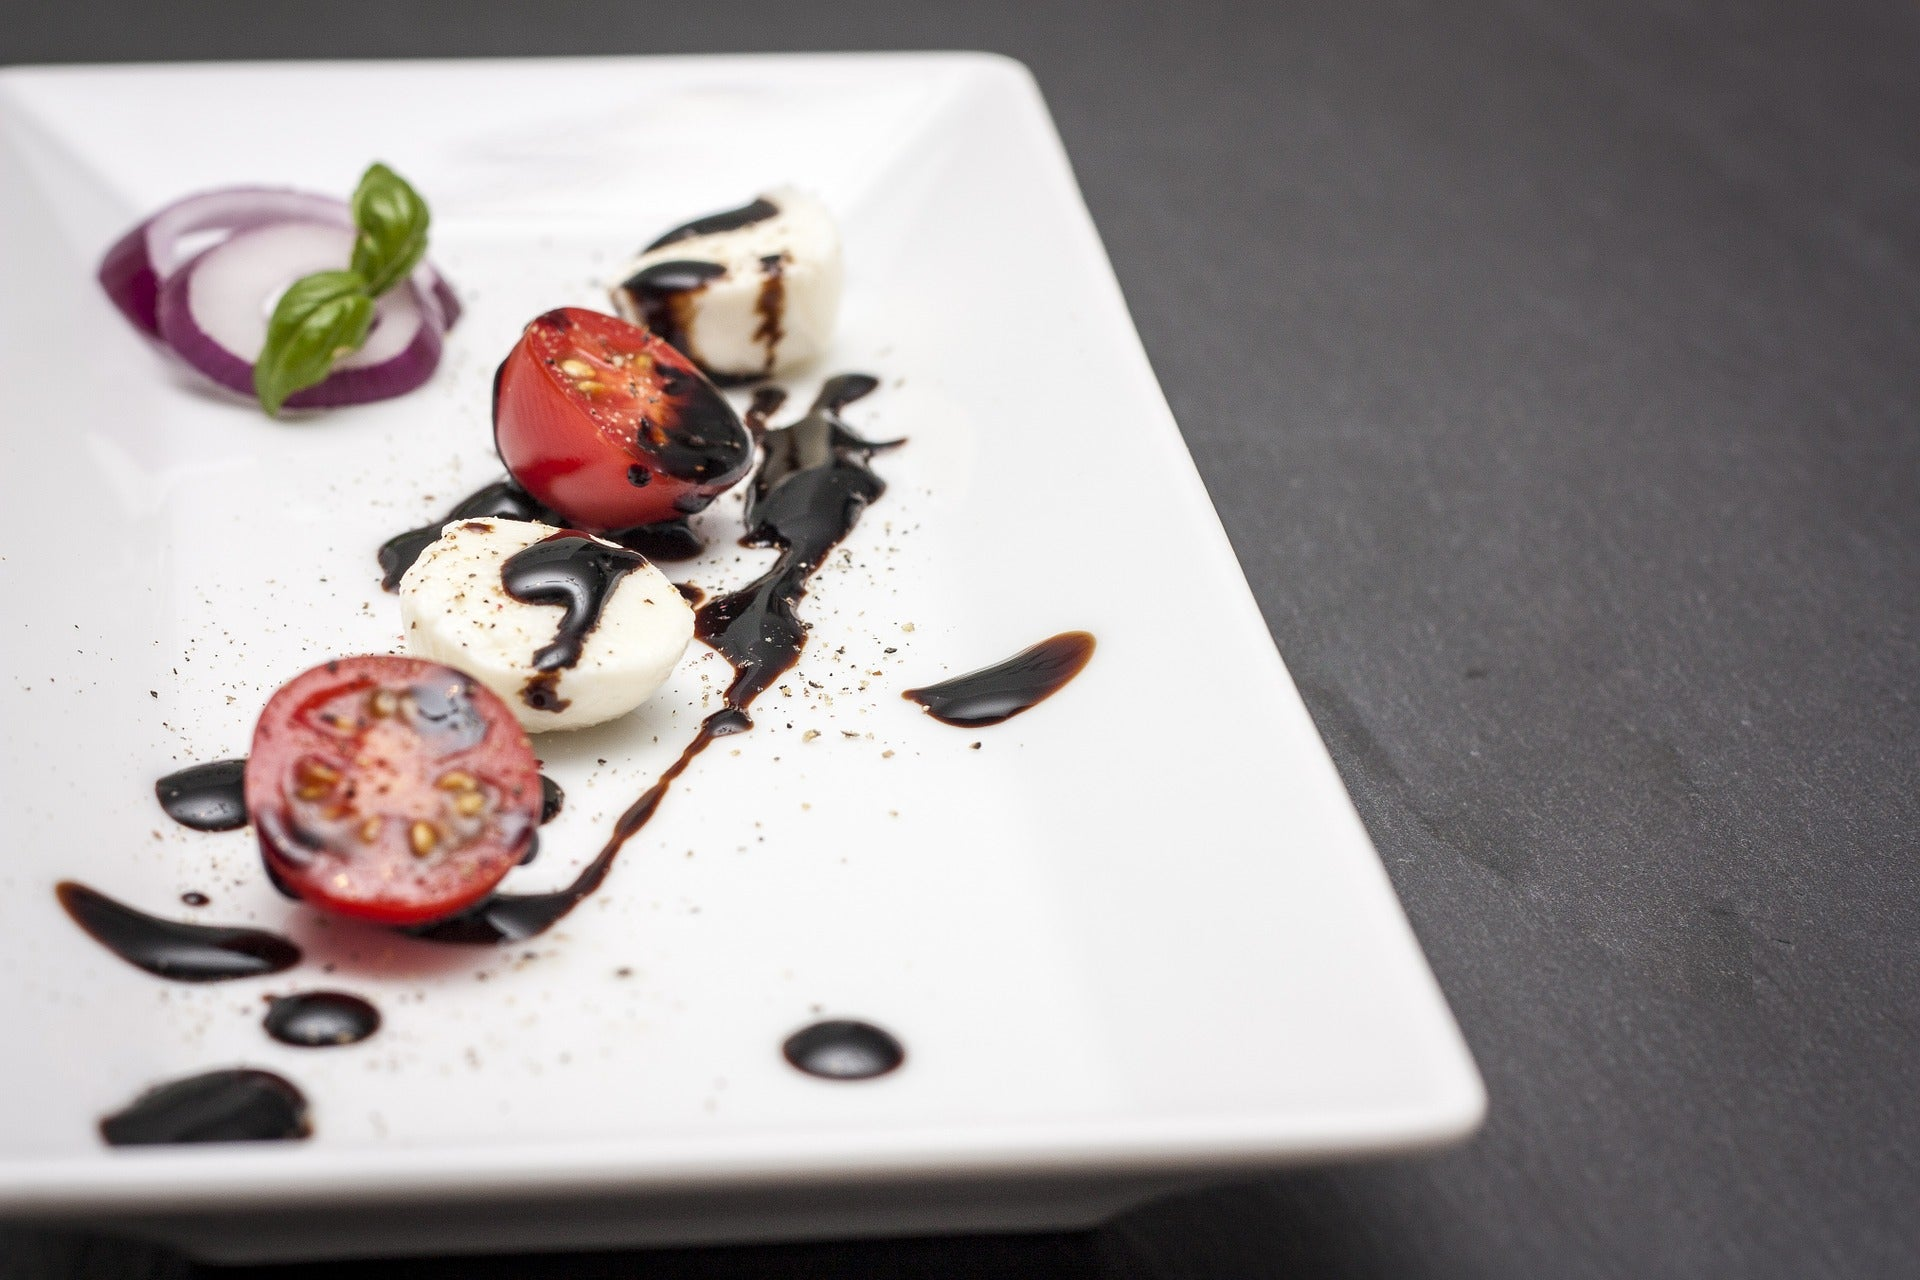 What is Balsamic vinegar and how is it made?